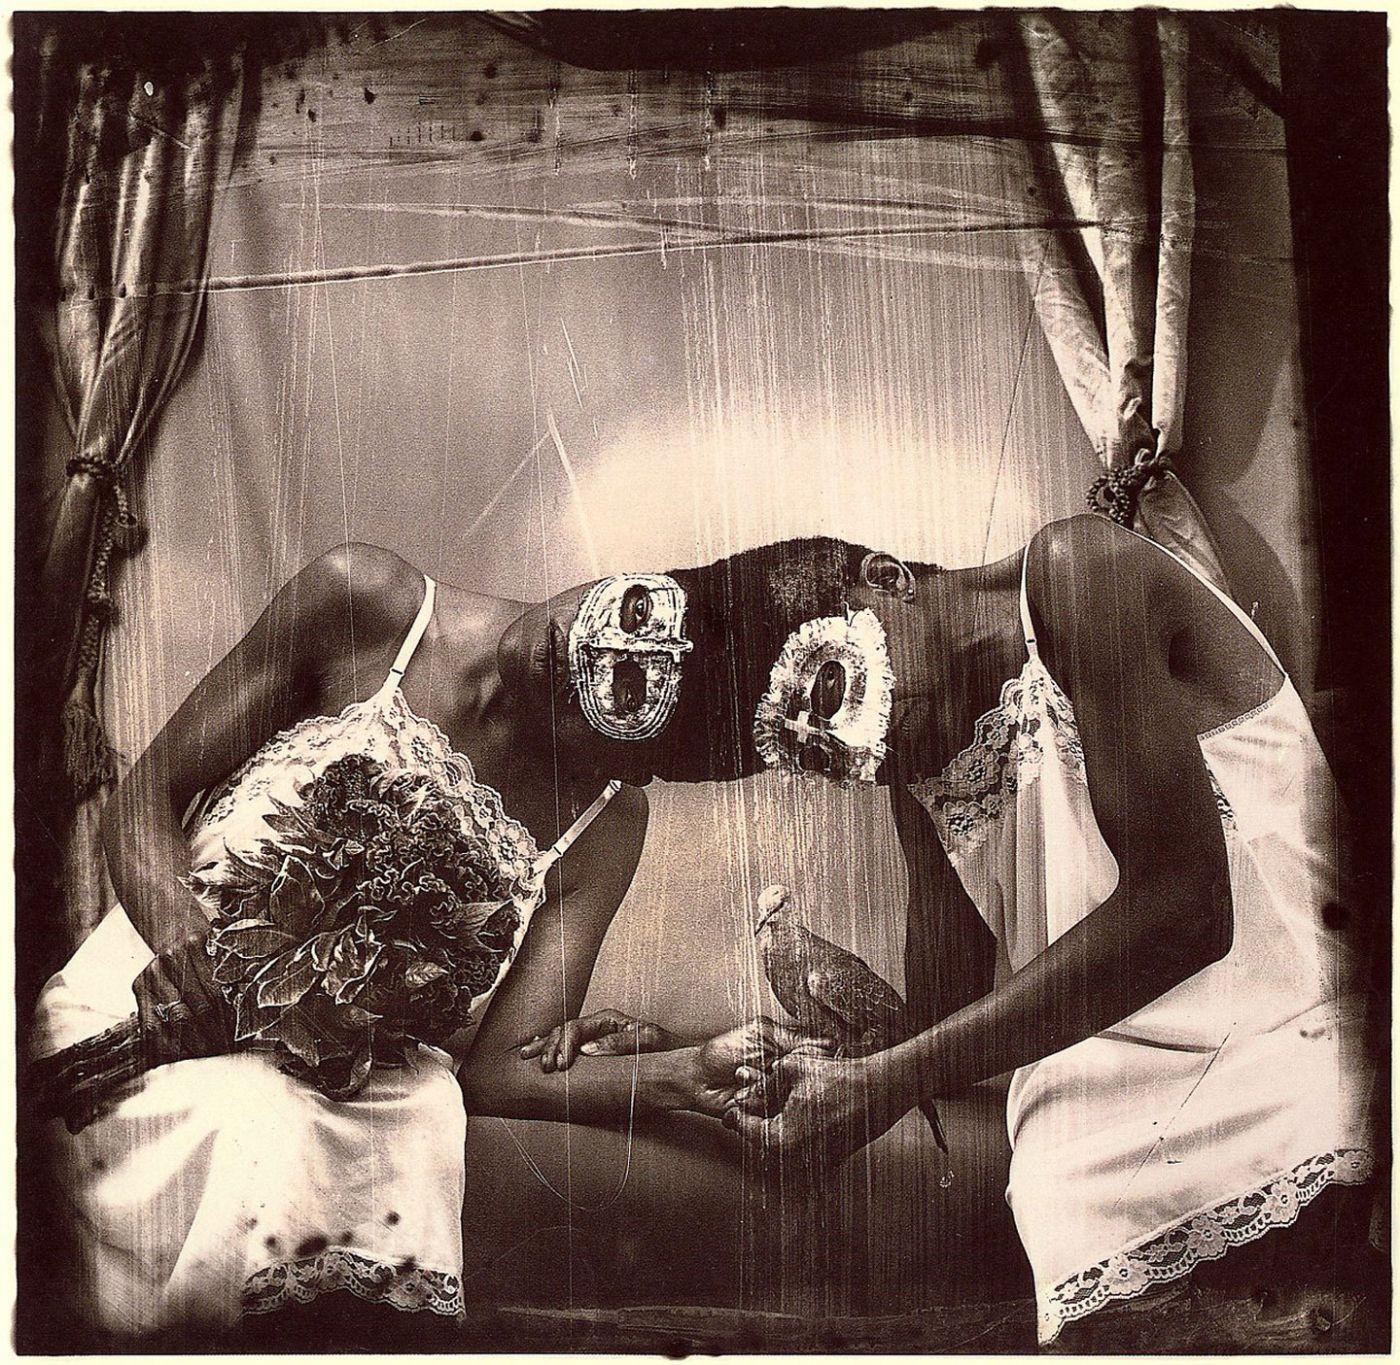 Joel-Peter Witkin: Gods of Earth and Heaven (Third Edition) [SIGNED]: WITKIN, Joel-Peter, BLAISDELL...